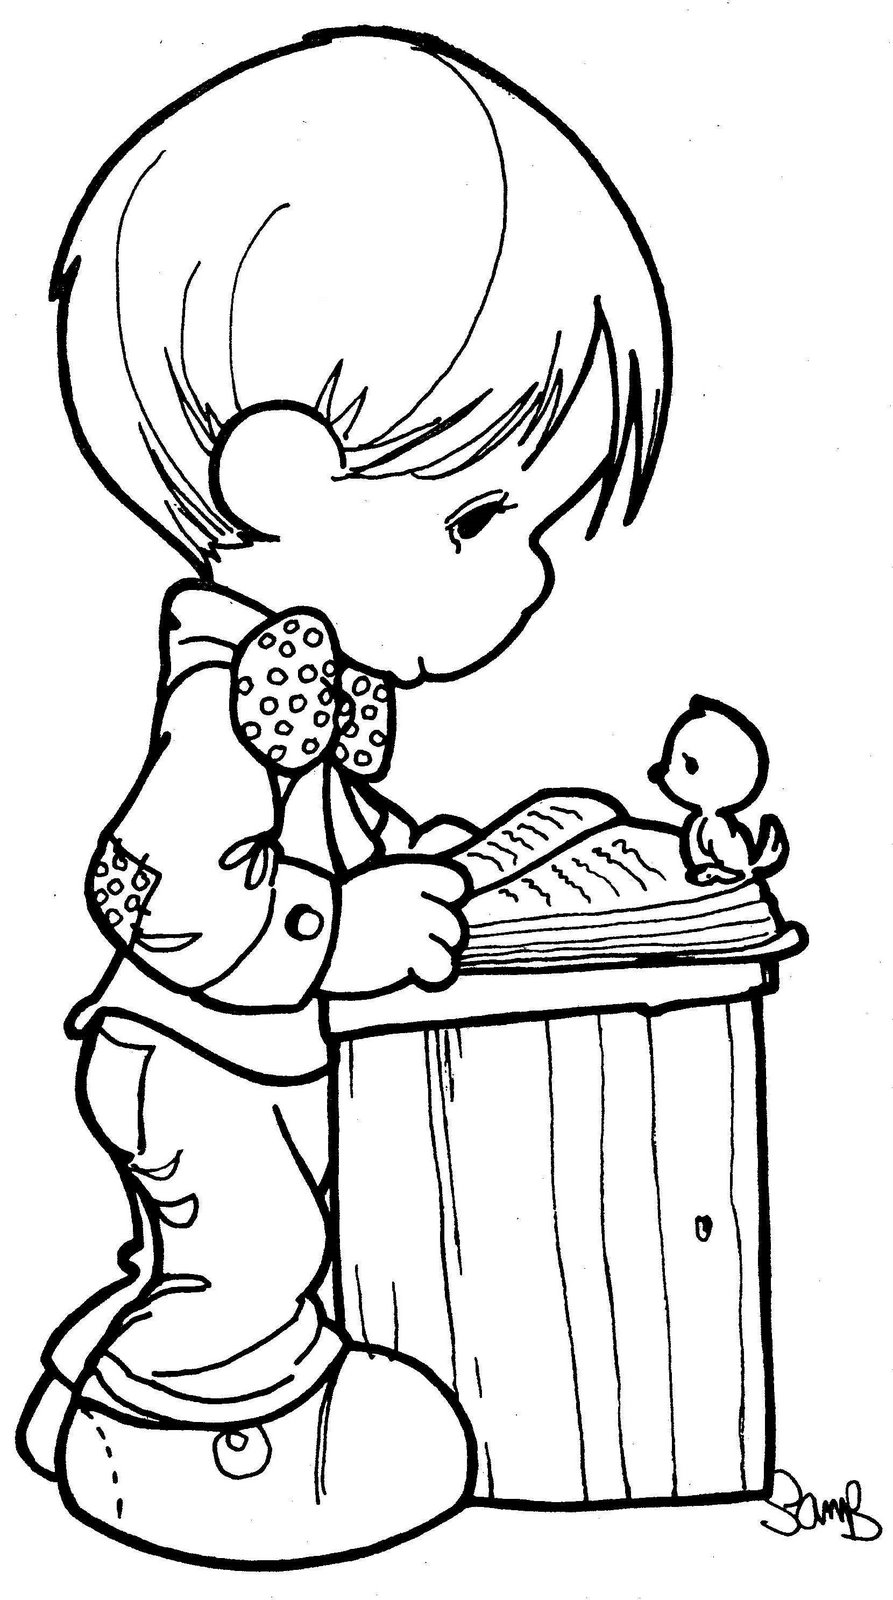 moments coloring pages - photo#16